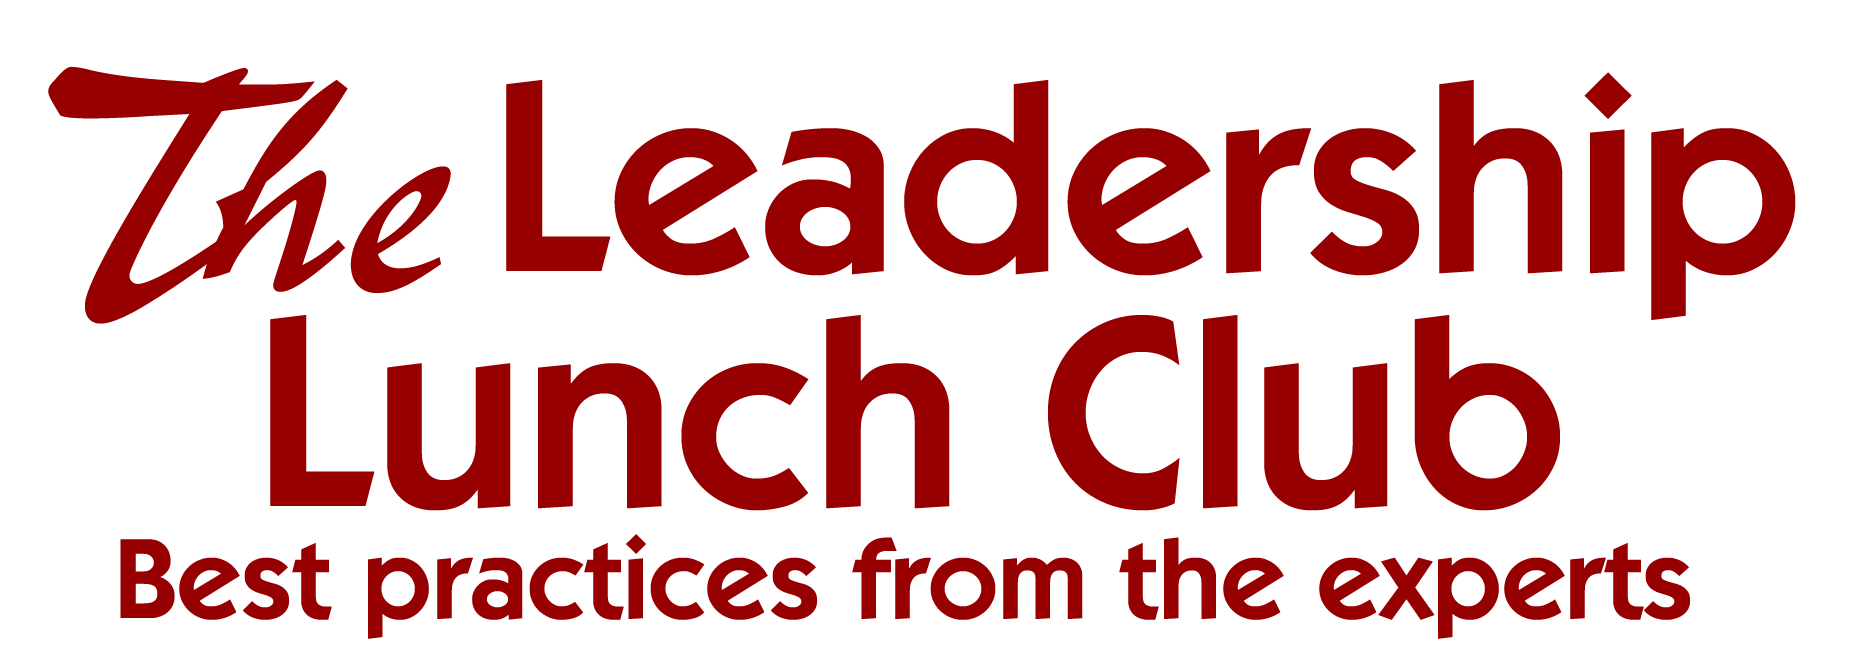 Luncheon clipart lunch club. Leadership best practices from